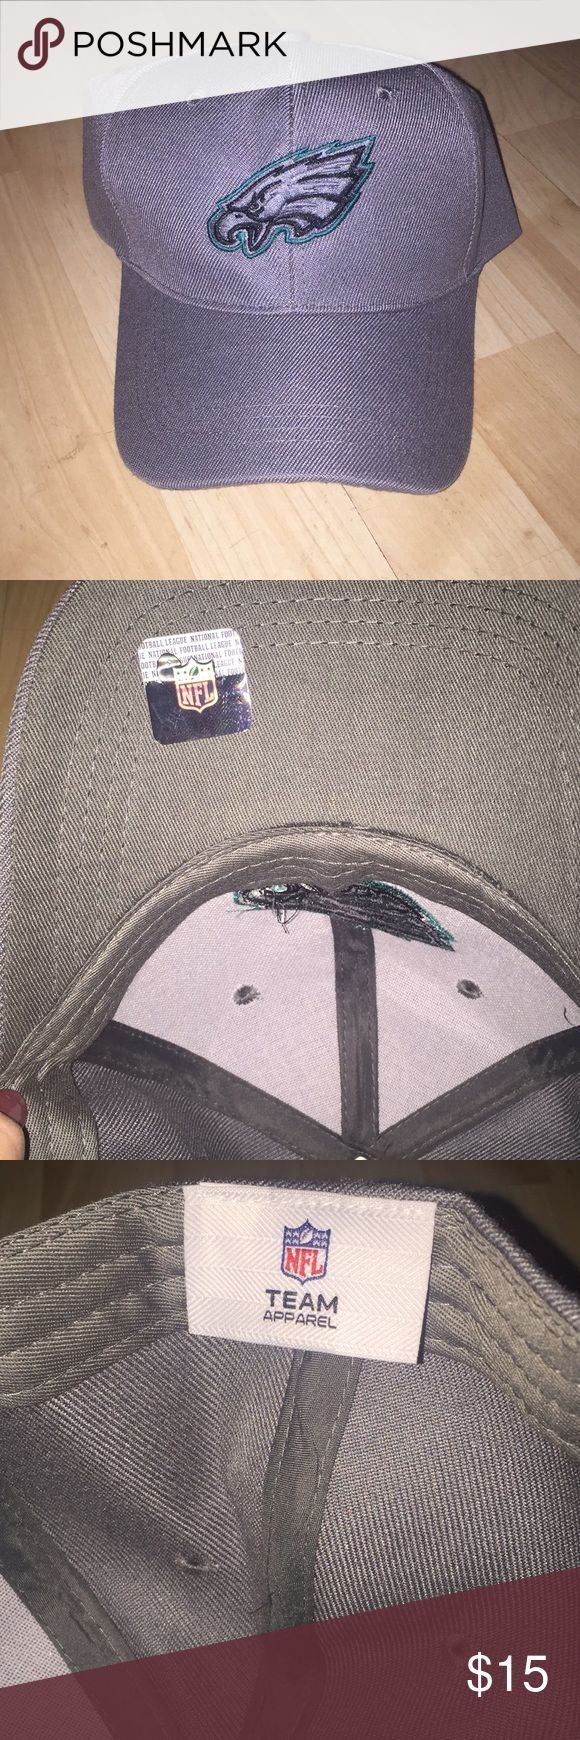 Philadelphia Eagles Ball Cap NWOT NFL TEAM APPAREL Philadelphia Eagles Hat. Grey with Green and Black stitching on the Eagle. Velcro back. New. Never worn. NFL Team Apparel Accessories Hats